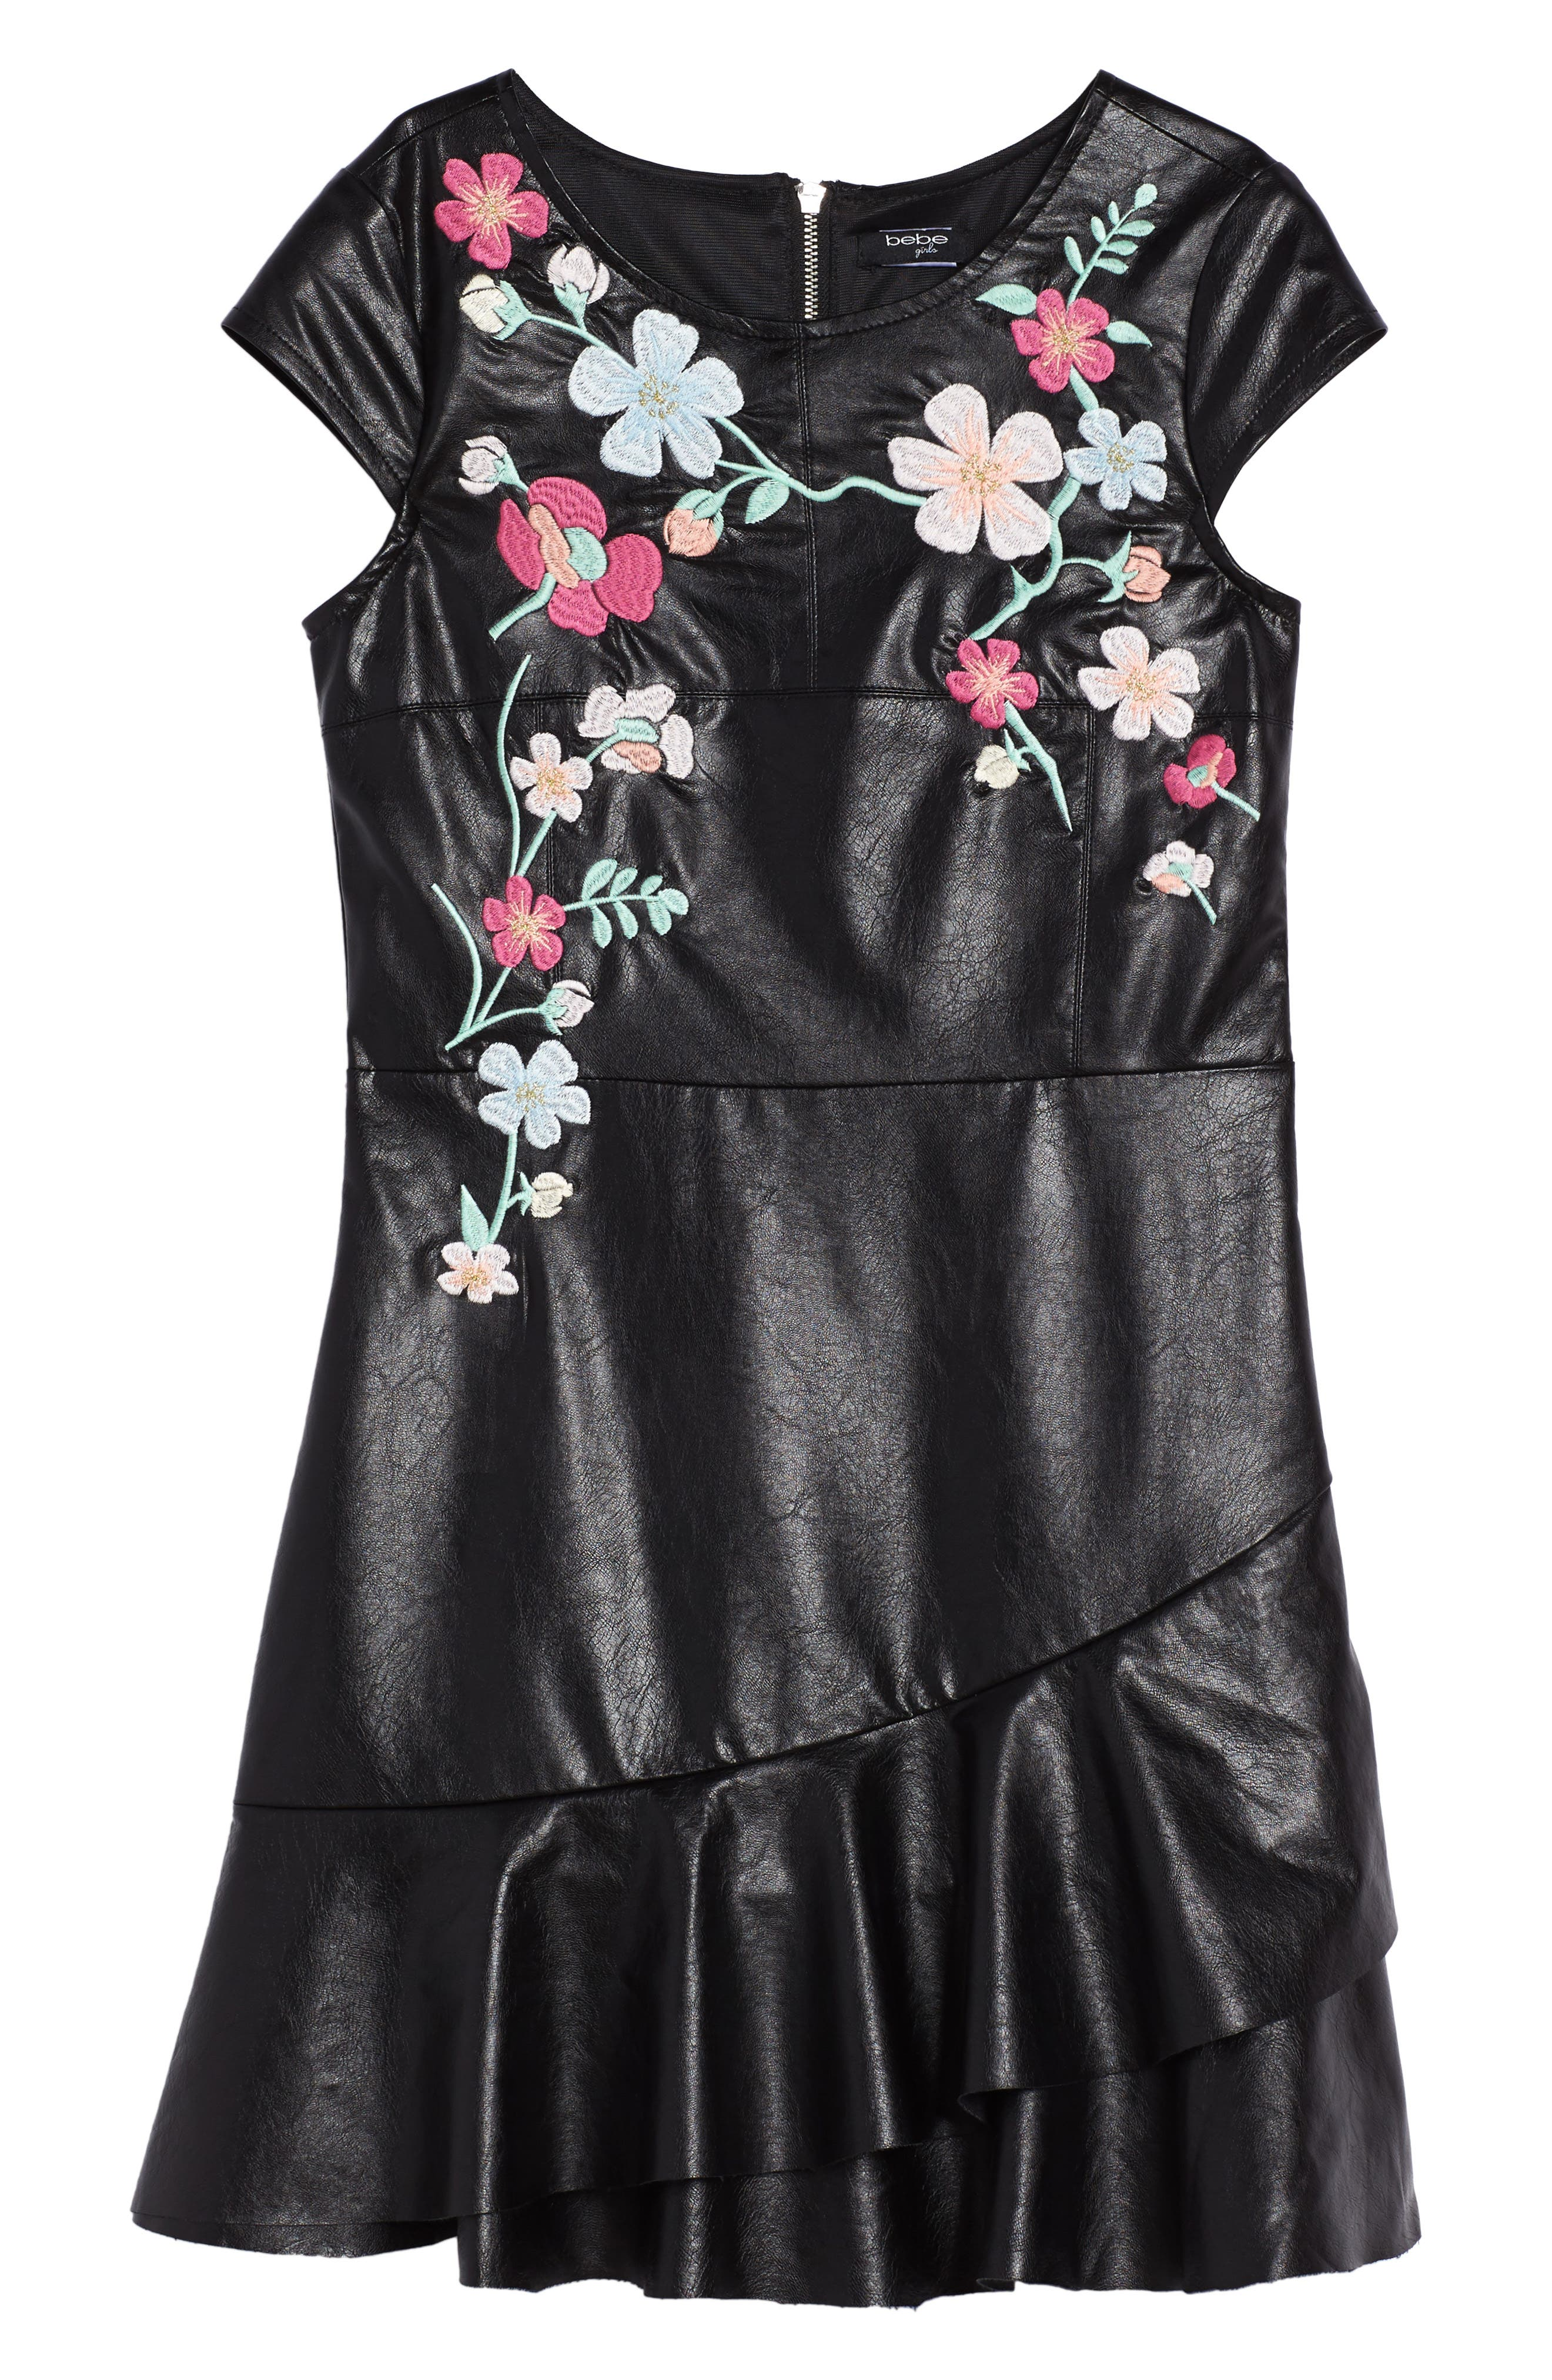 Main Image - bebe Embroidered Faux Leather Dress (Big Girls)